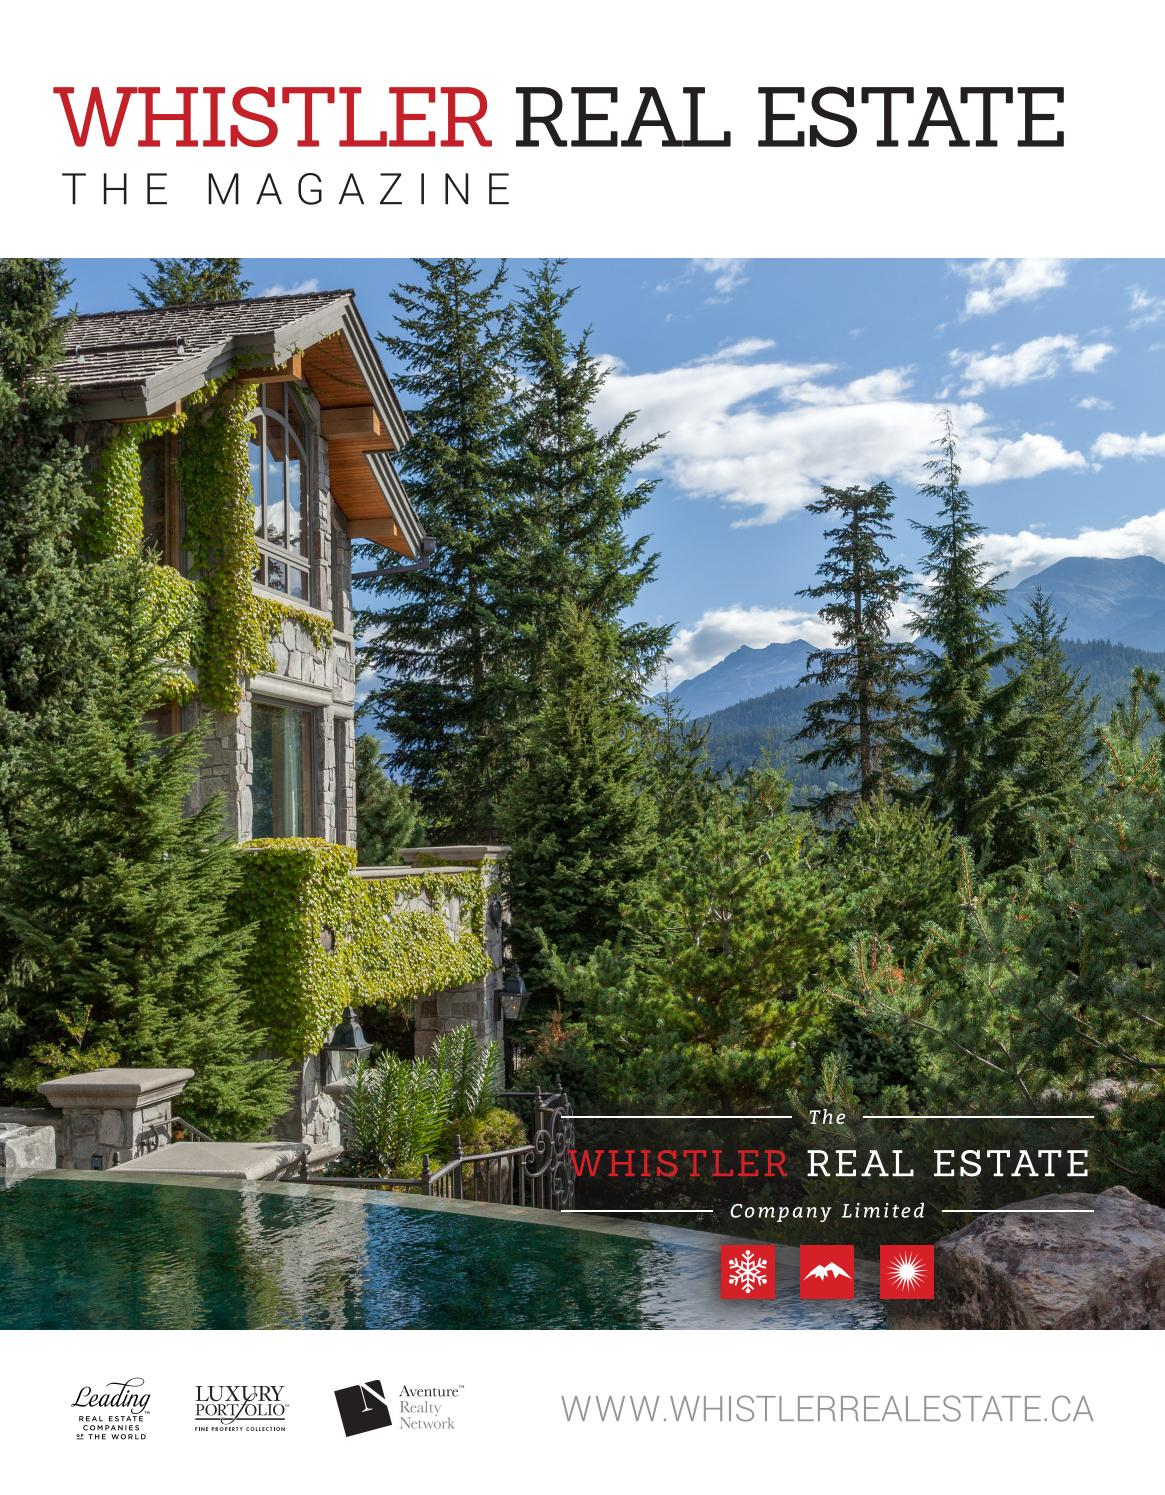 Whistler Real Estate The Magazine   Summer 2017 By WhistlerRealEstate    Issuu